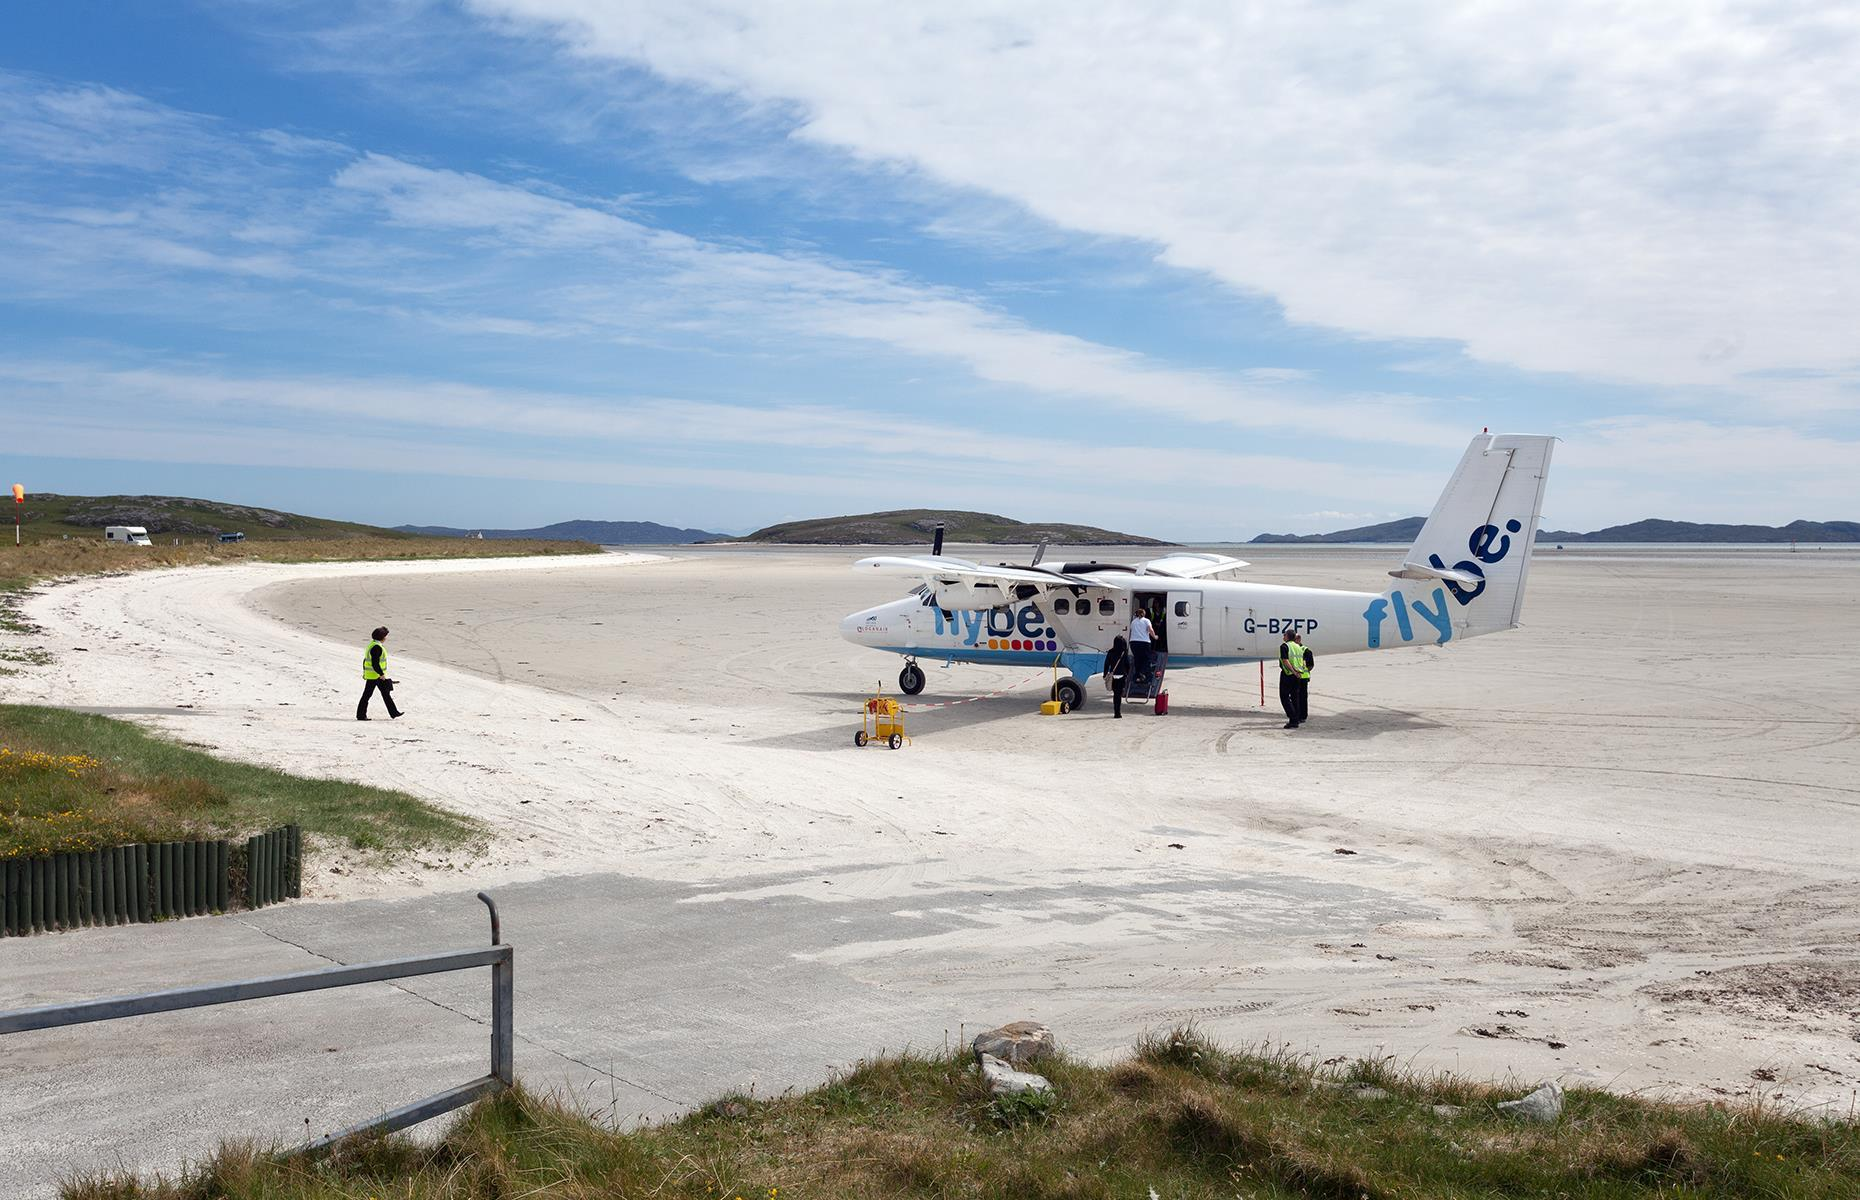 Outer Hebrides, Barra beach airport